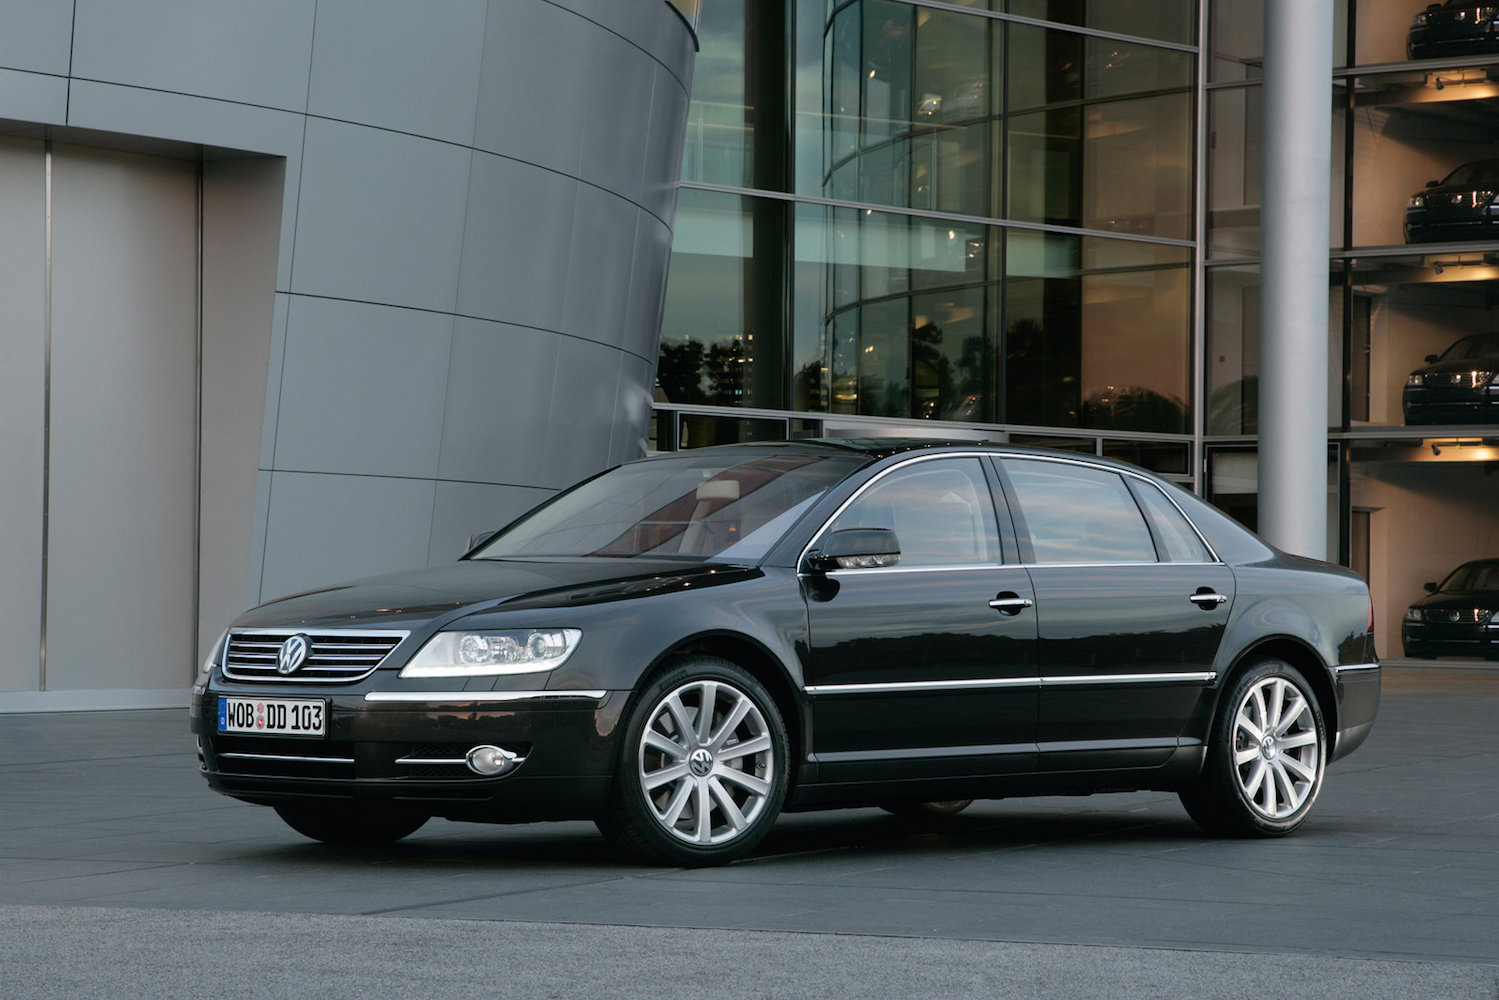 Volkswagen's Next Generation Phaeton Will Lead The Brand's